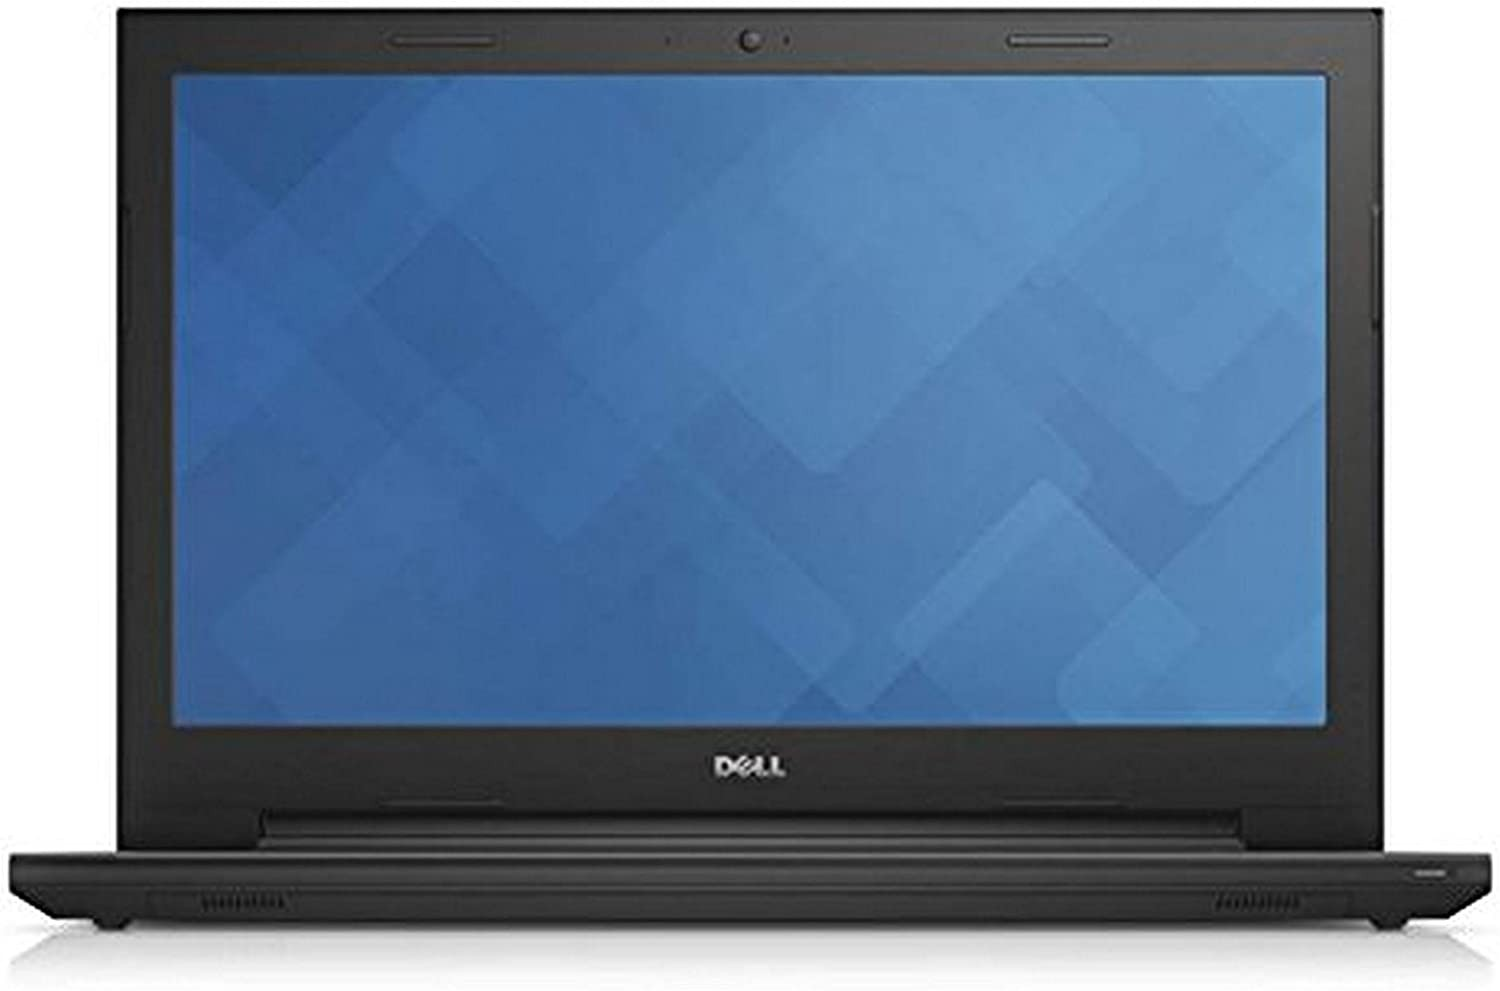 Refurbished laptops & desktops - REFURBISHED DELL INSPIRON 3543 (CORE I5 5TH GEN/4GB/640GB/WEBCAM/15.6''/DOS)